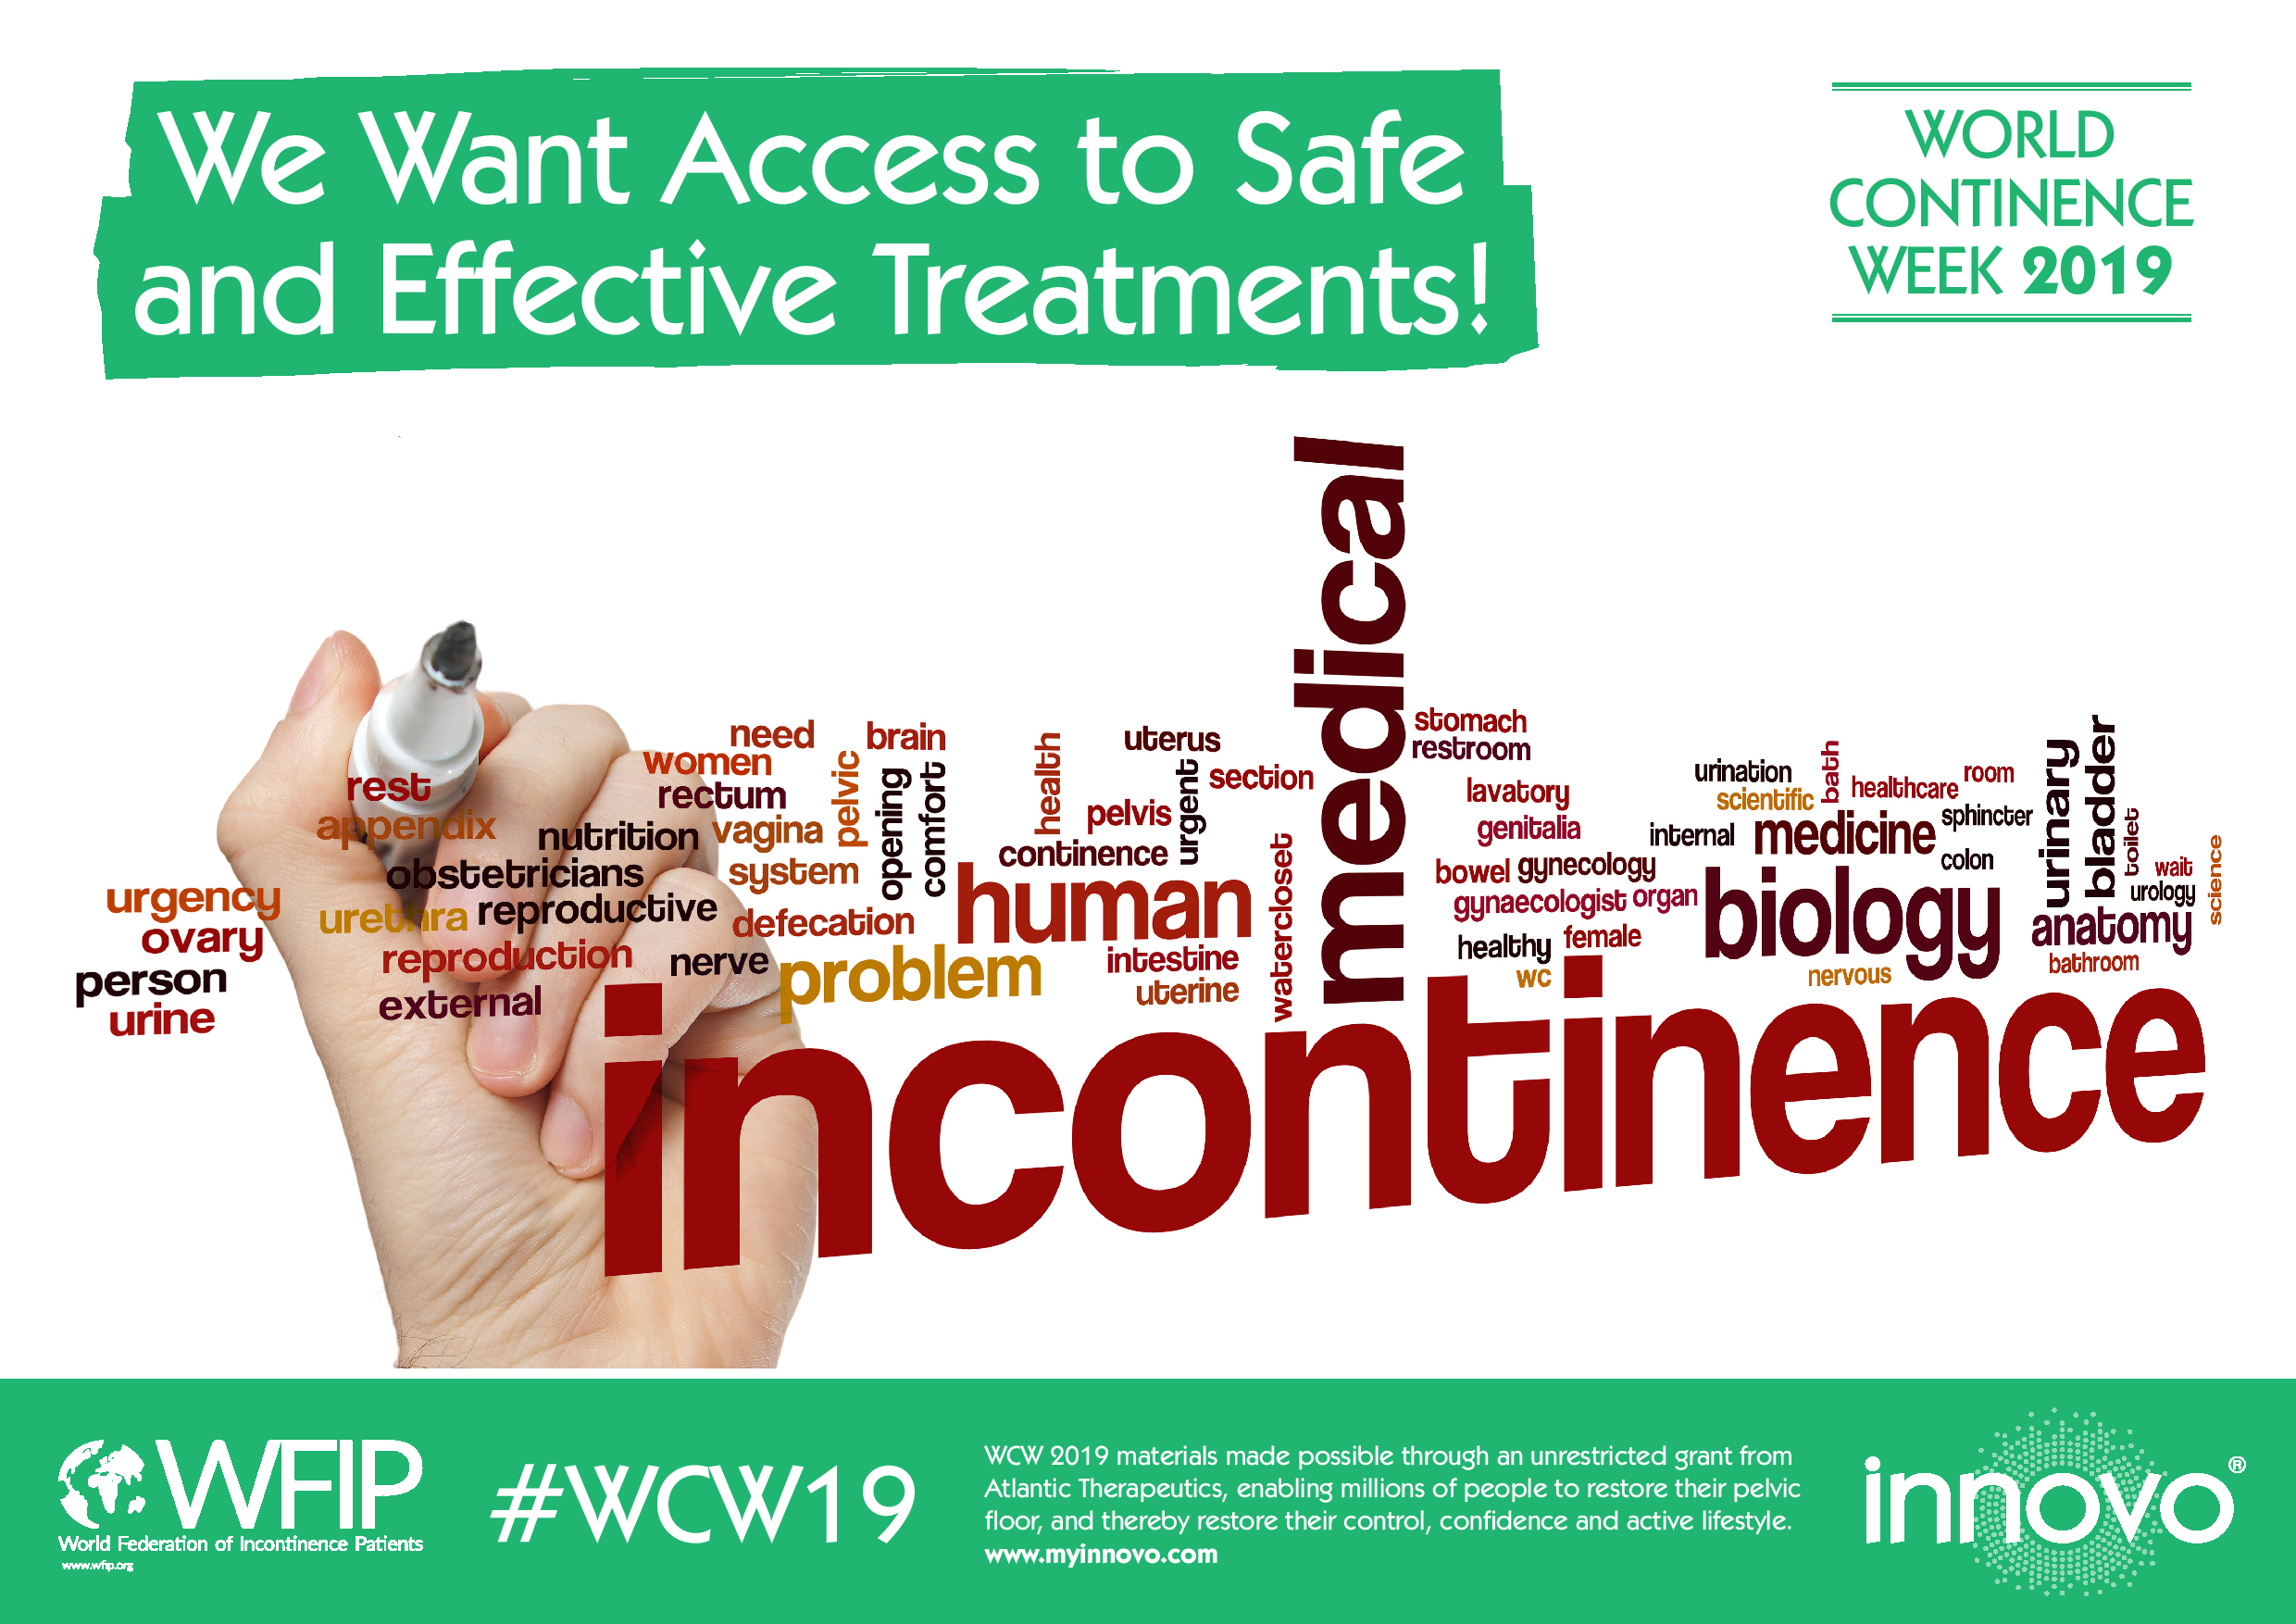 World continence week 2019 poster